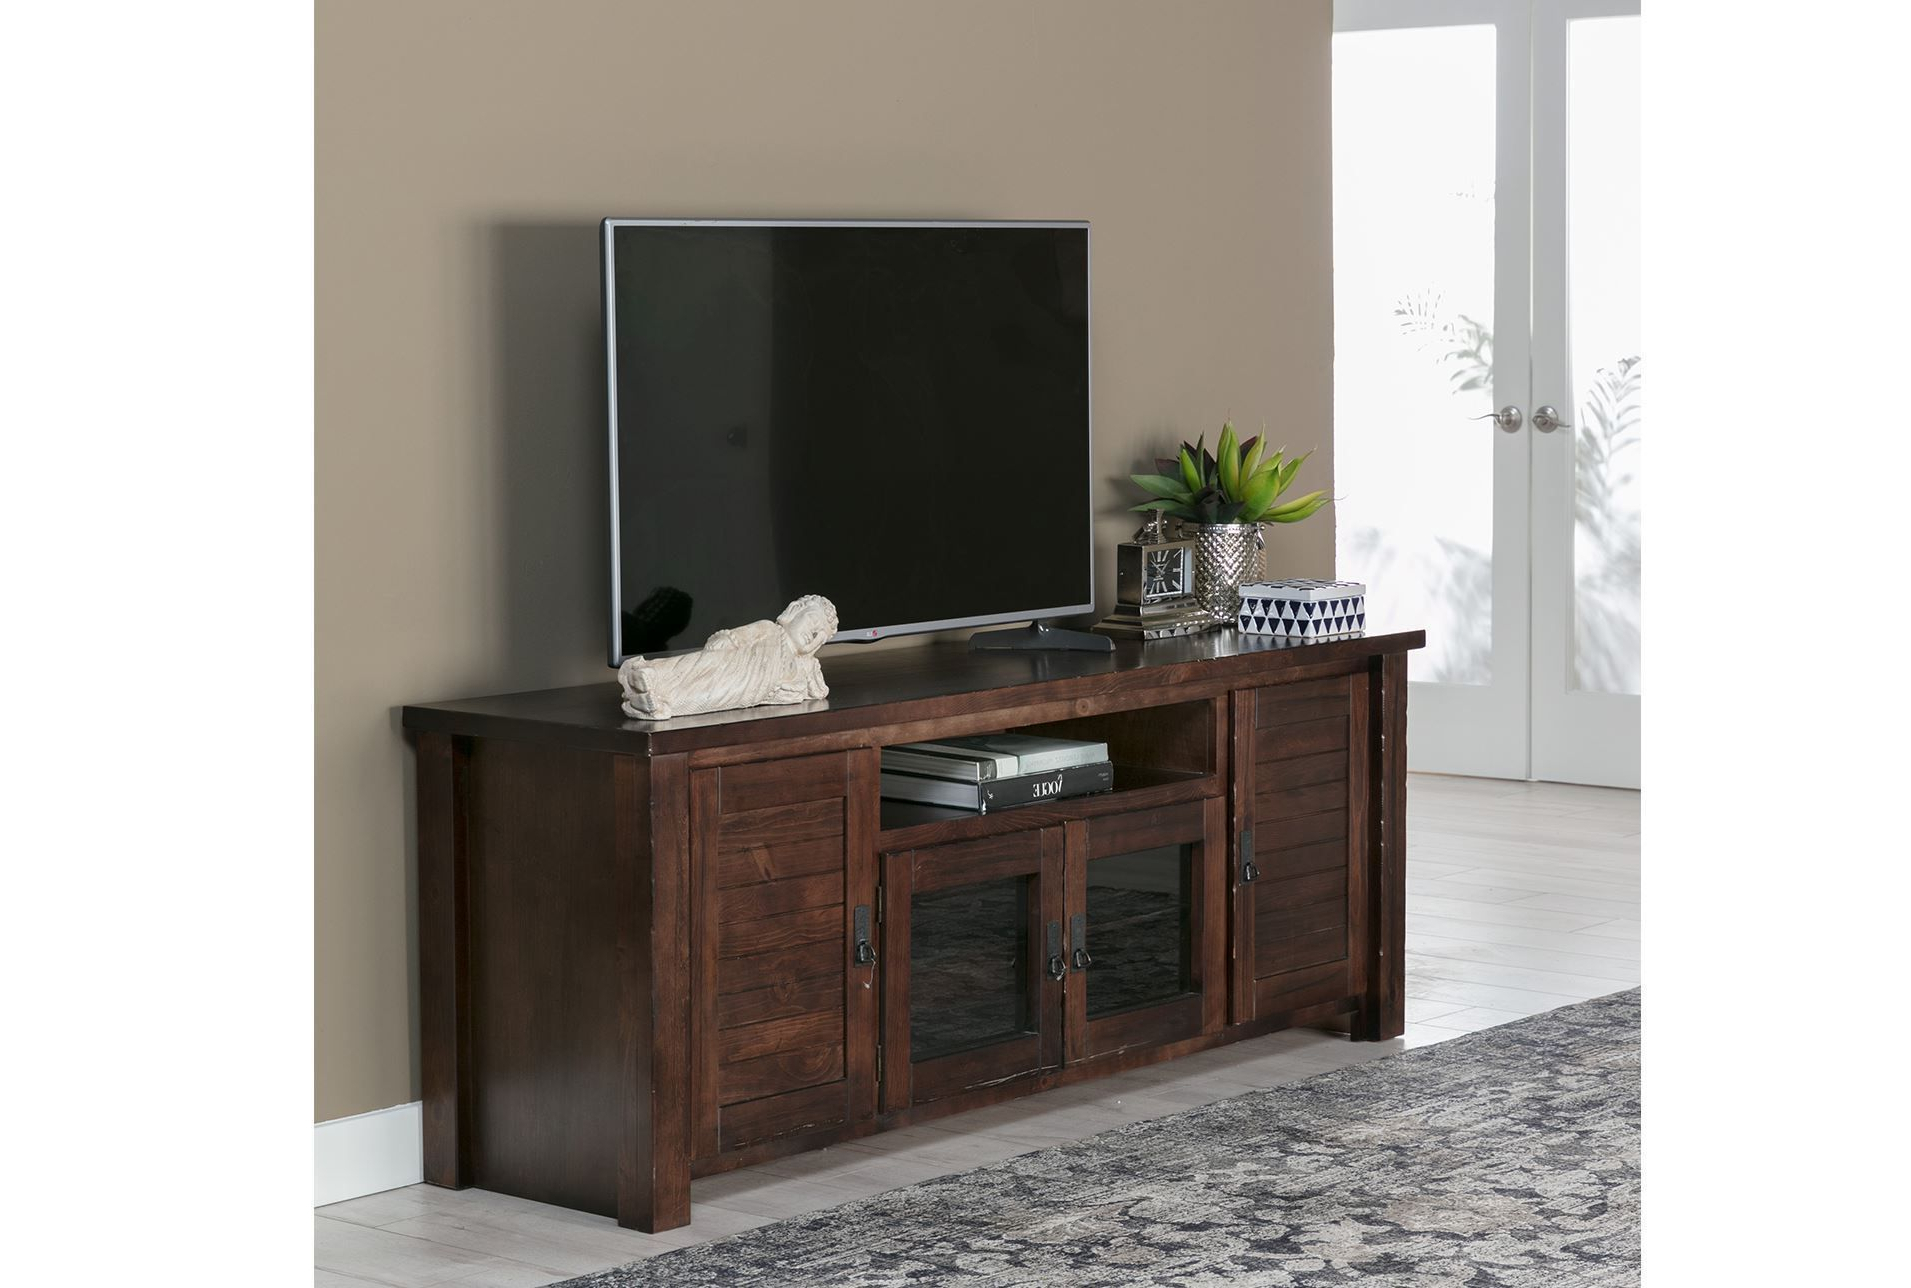 Canyon 74 Inch Tv Stand | For The Home | Pinterest | Home Living Intended For Canyon 74 Inch Tv Stands (View 3 of 20)